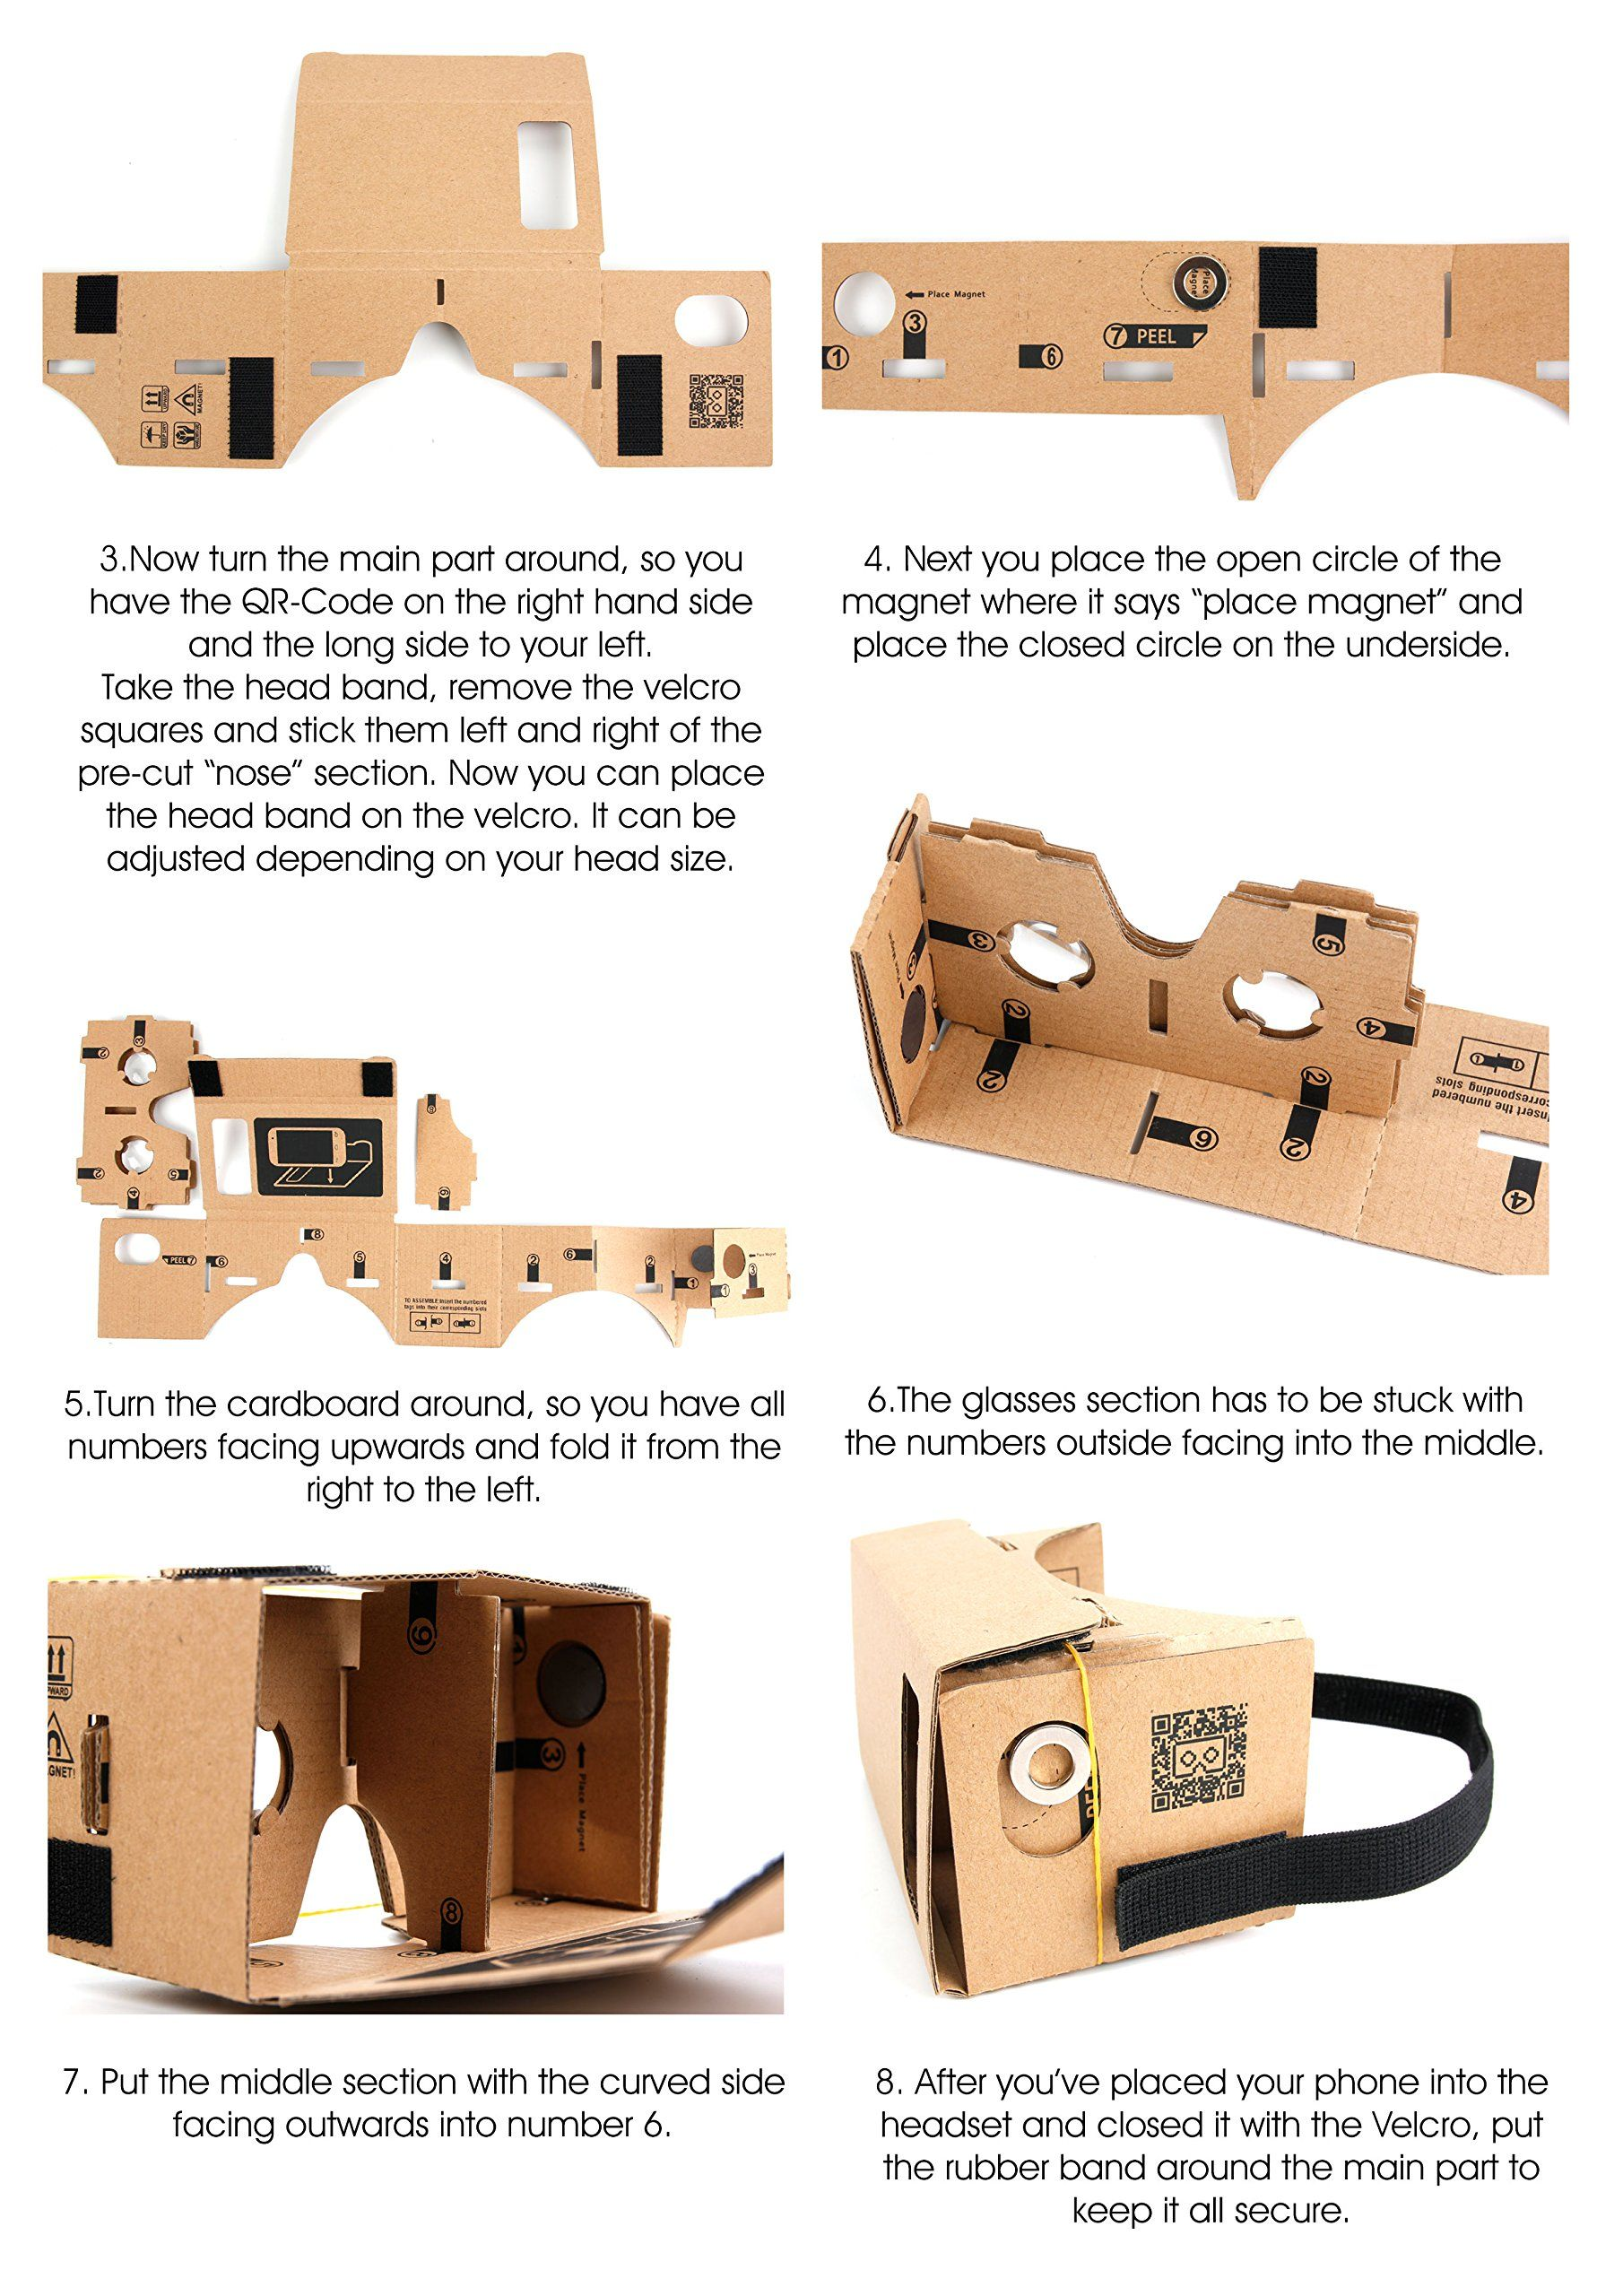 Google Cardboard Virtual Reality Headset Compatible with the